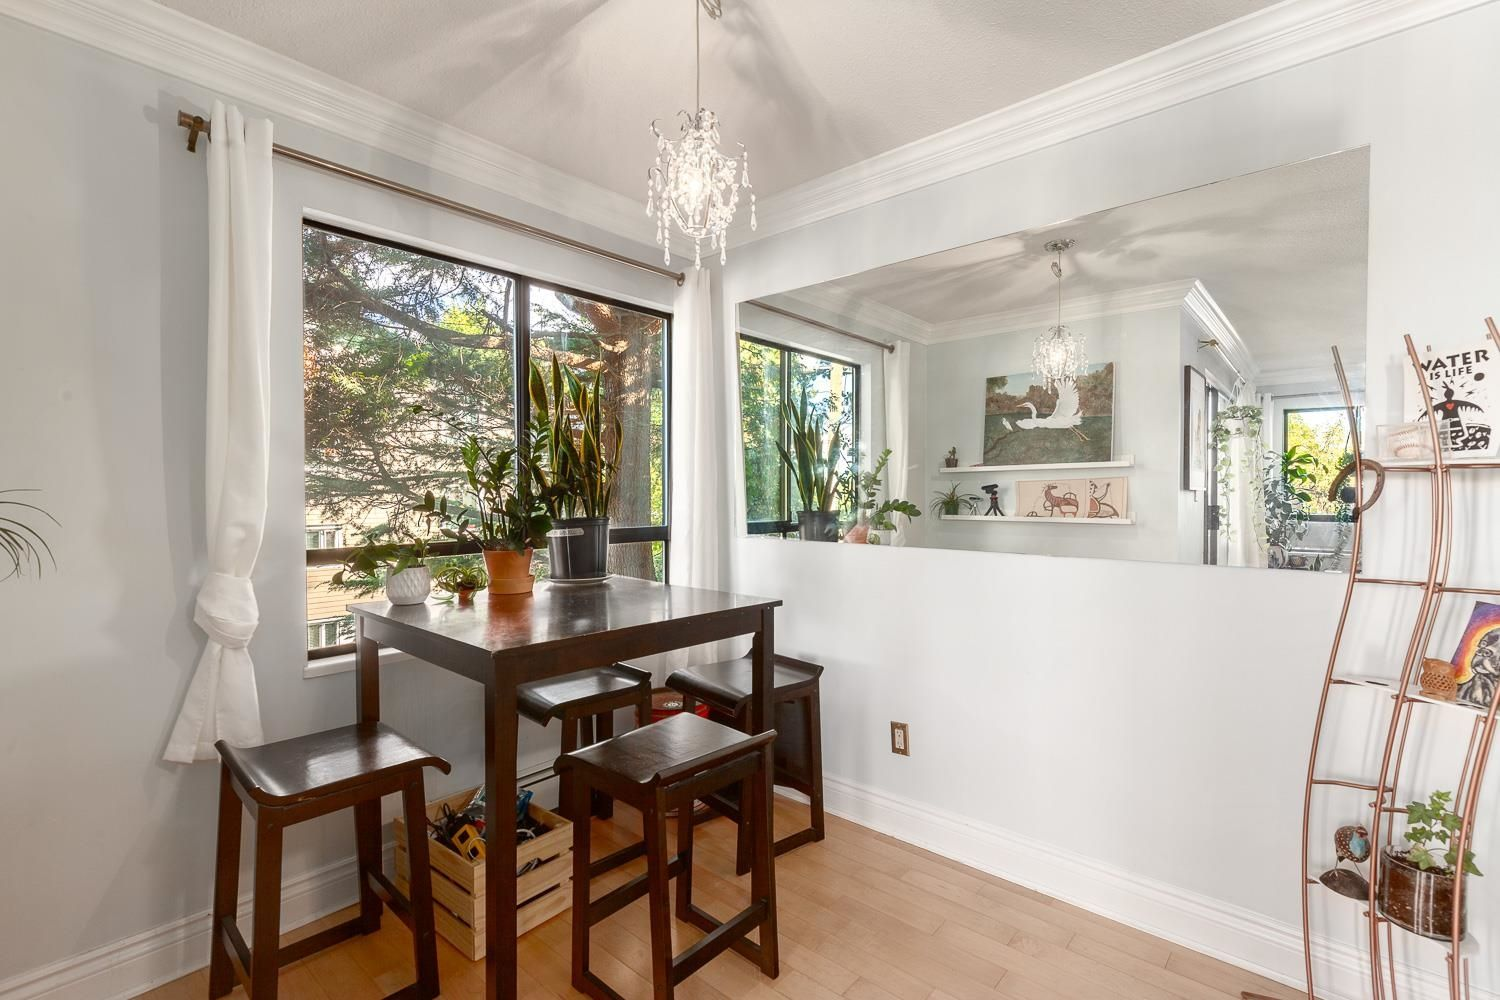 """Main Photo: 203 215 N TEMPLETON Drive in Vancouver: Hastings Condo for sale in """"Porto Vista"""" (Vancouver East)  : MLS®# R2618267"""